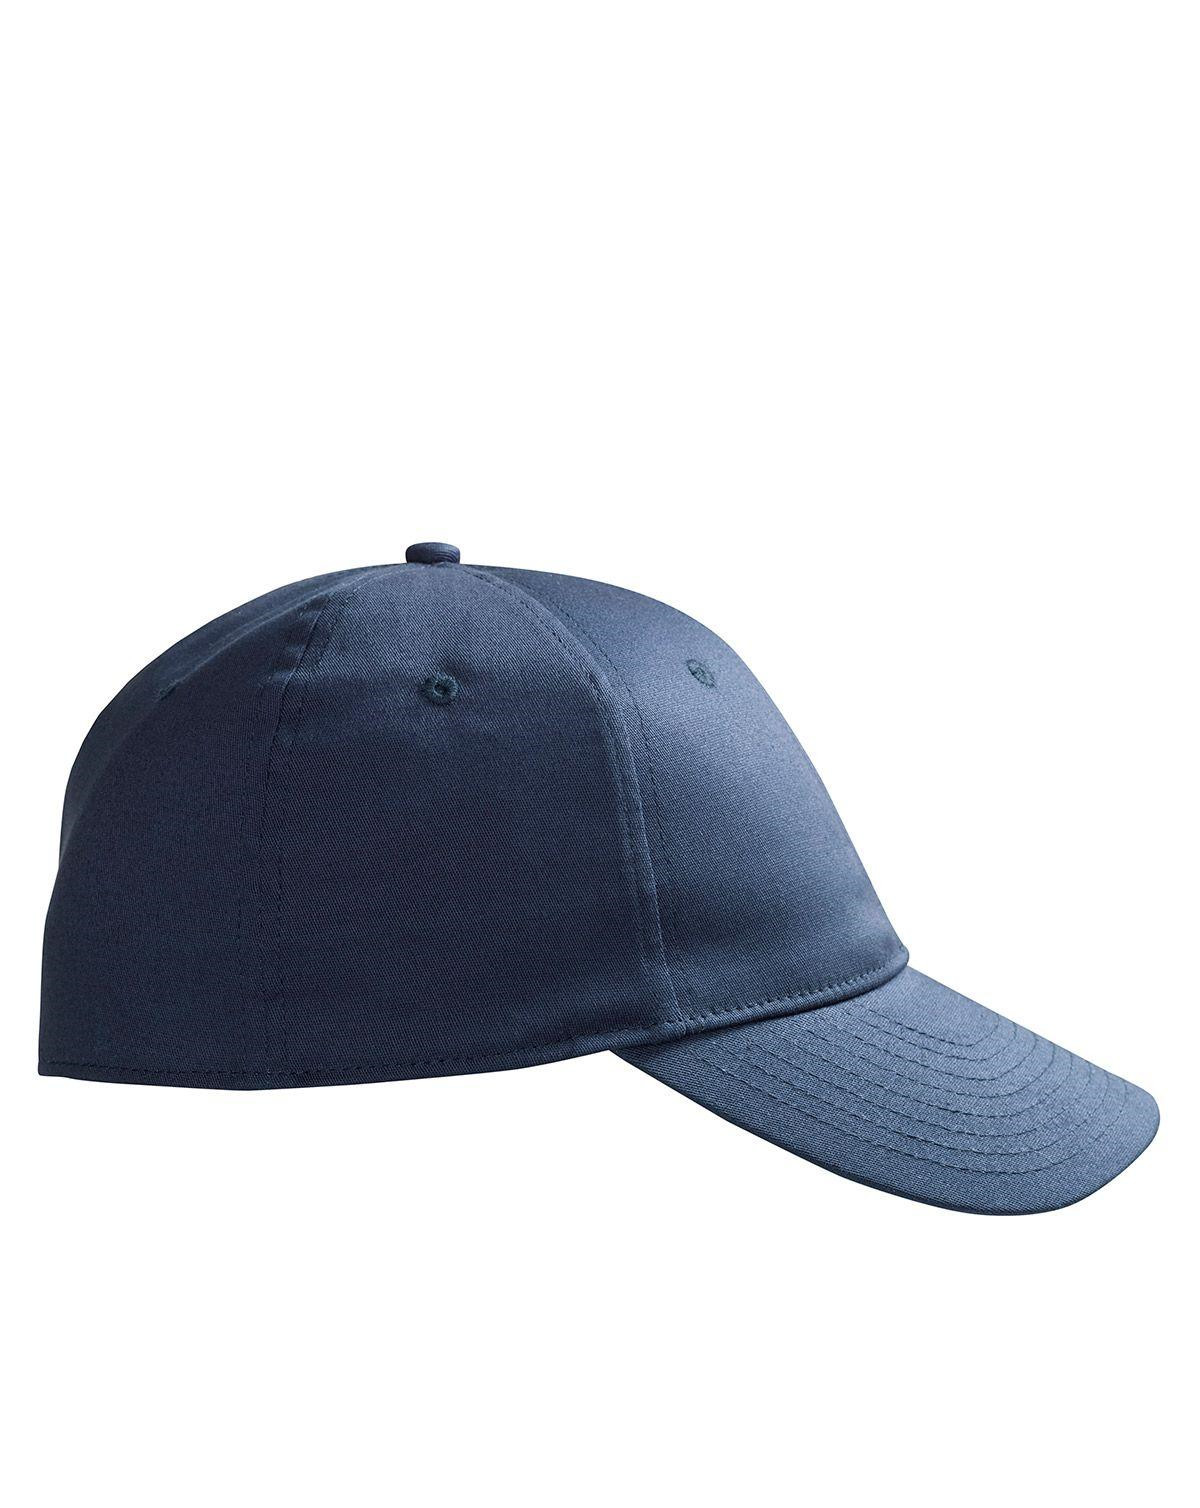 Image of   ID Baseball Cap (Navy, One Size)